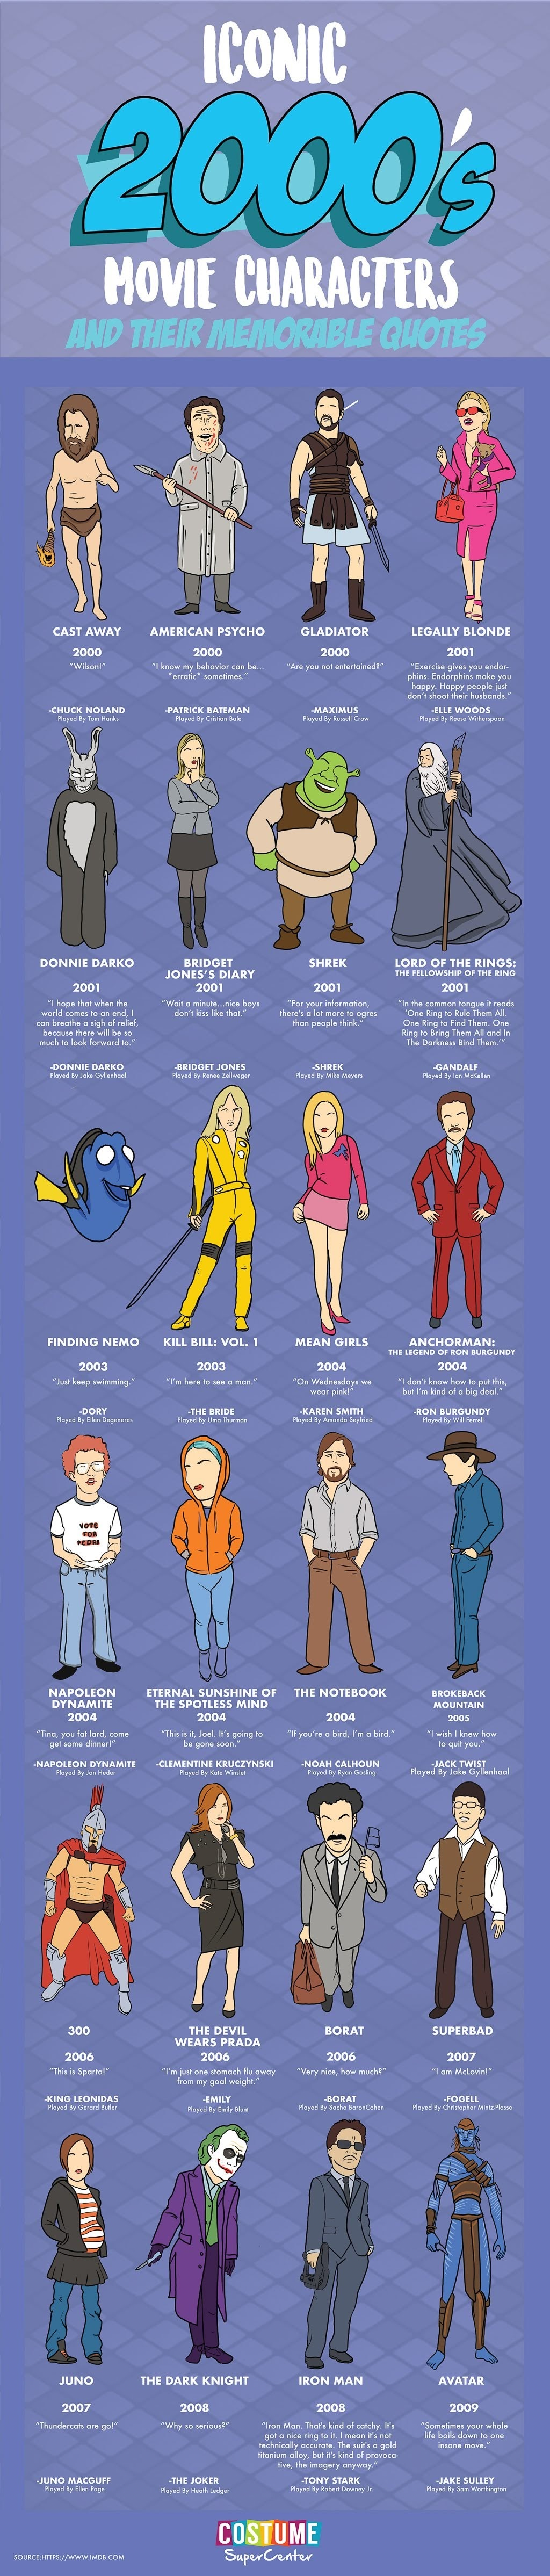 Iconic 2000's Movie Characters #Infographics